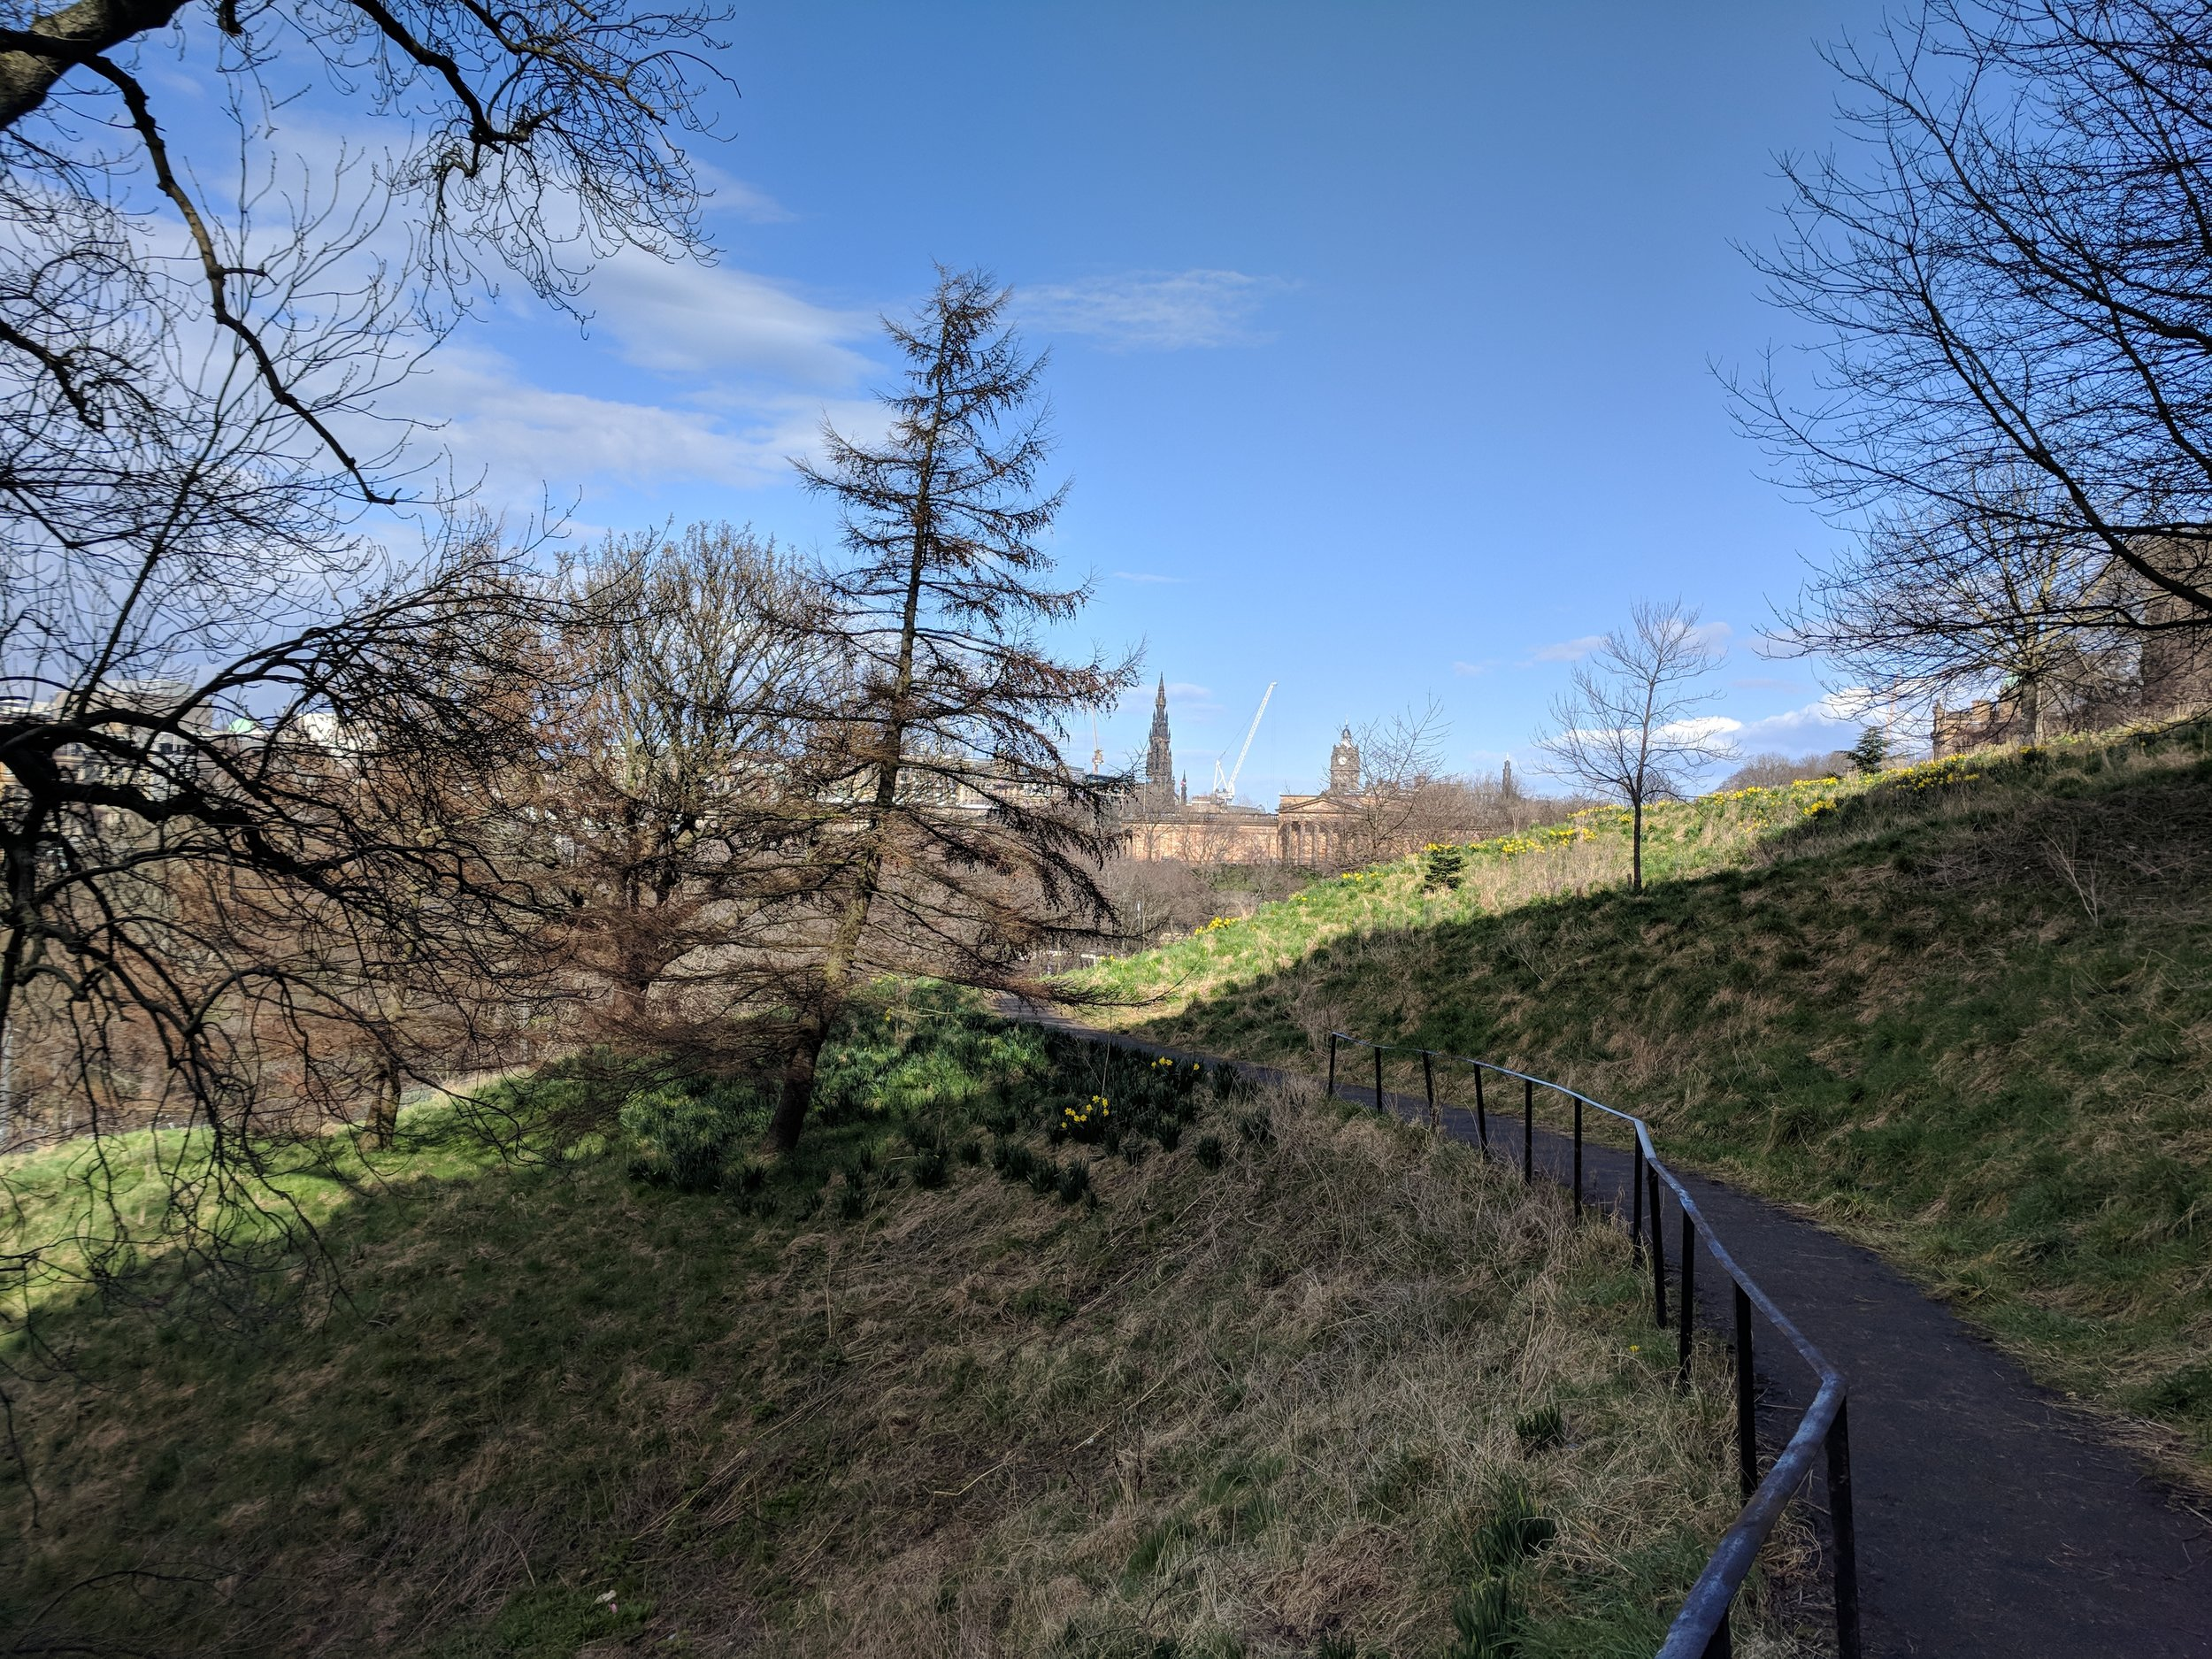 The walk up to Edinburgh Castle